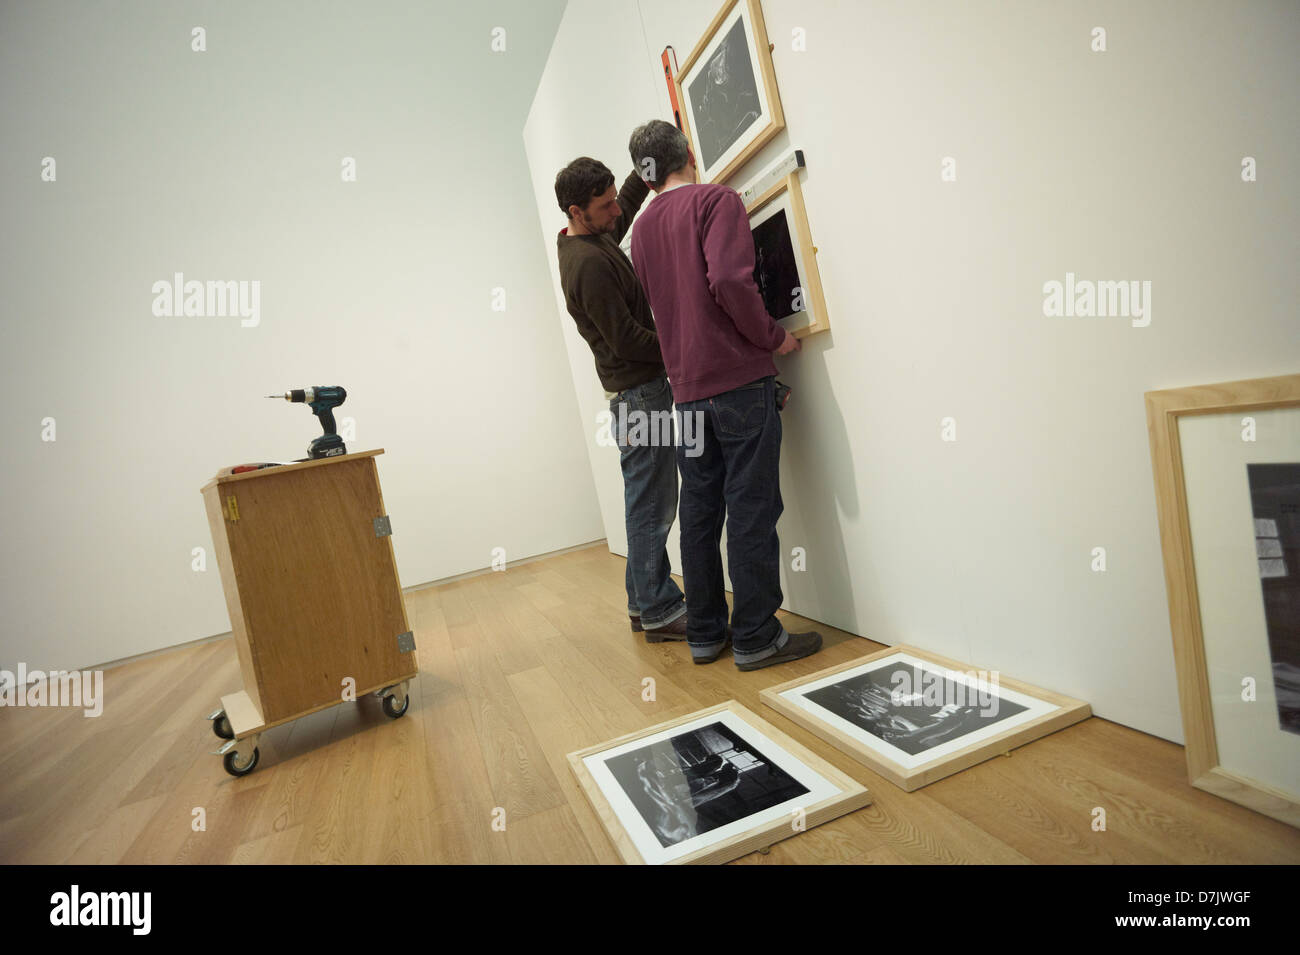 Staff at the Royal Albert Memorial Museum in Exeter England Hanging 'The Tannery' photography Exhibition. - Stock Image